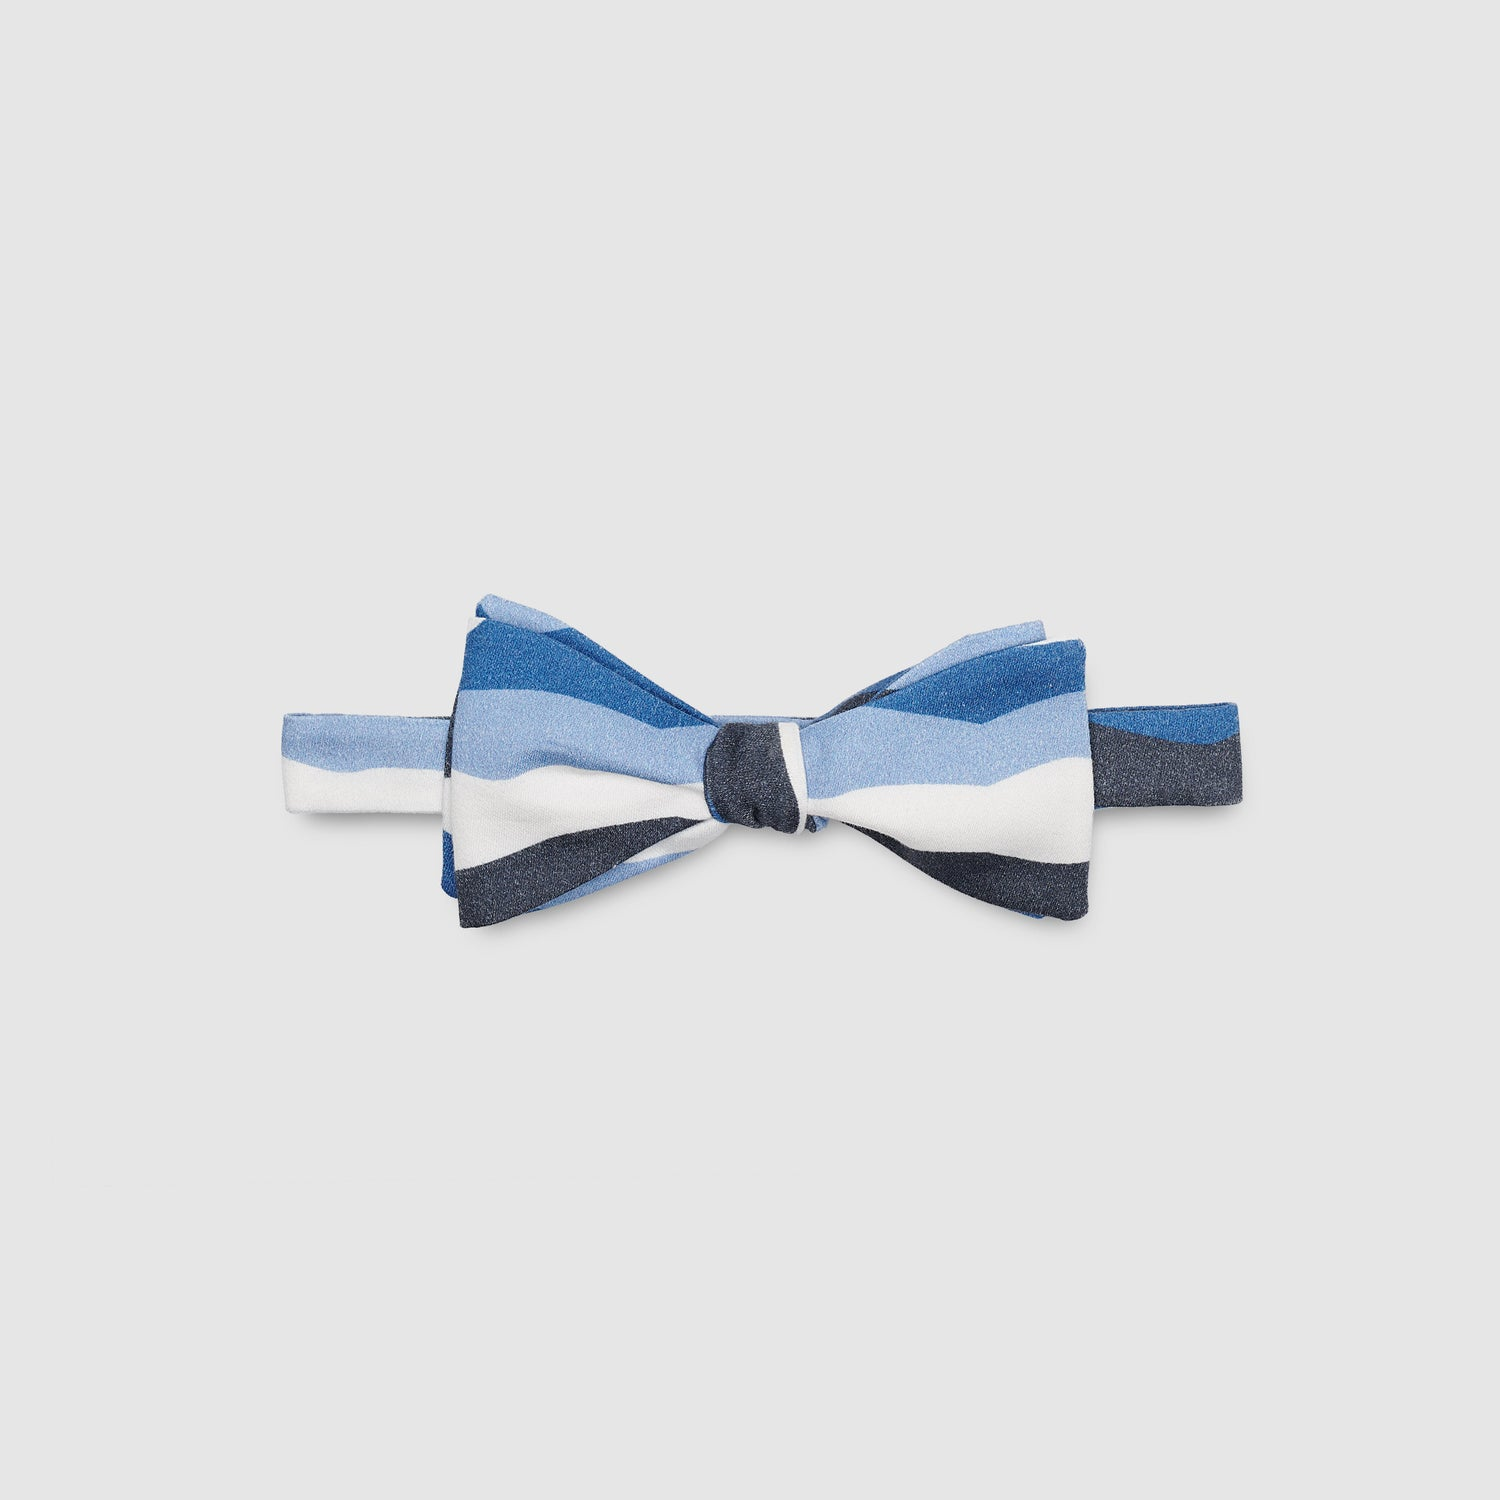 ORION - the bow tie